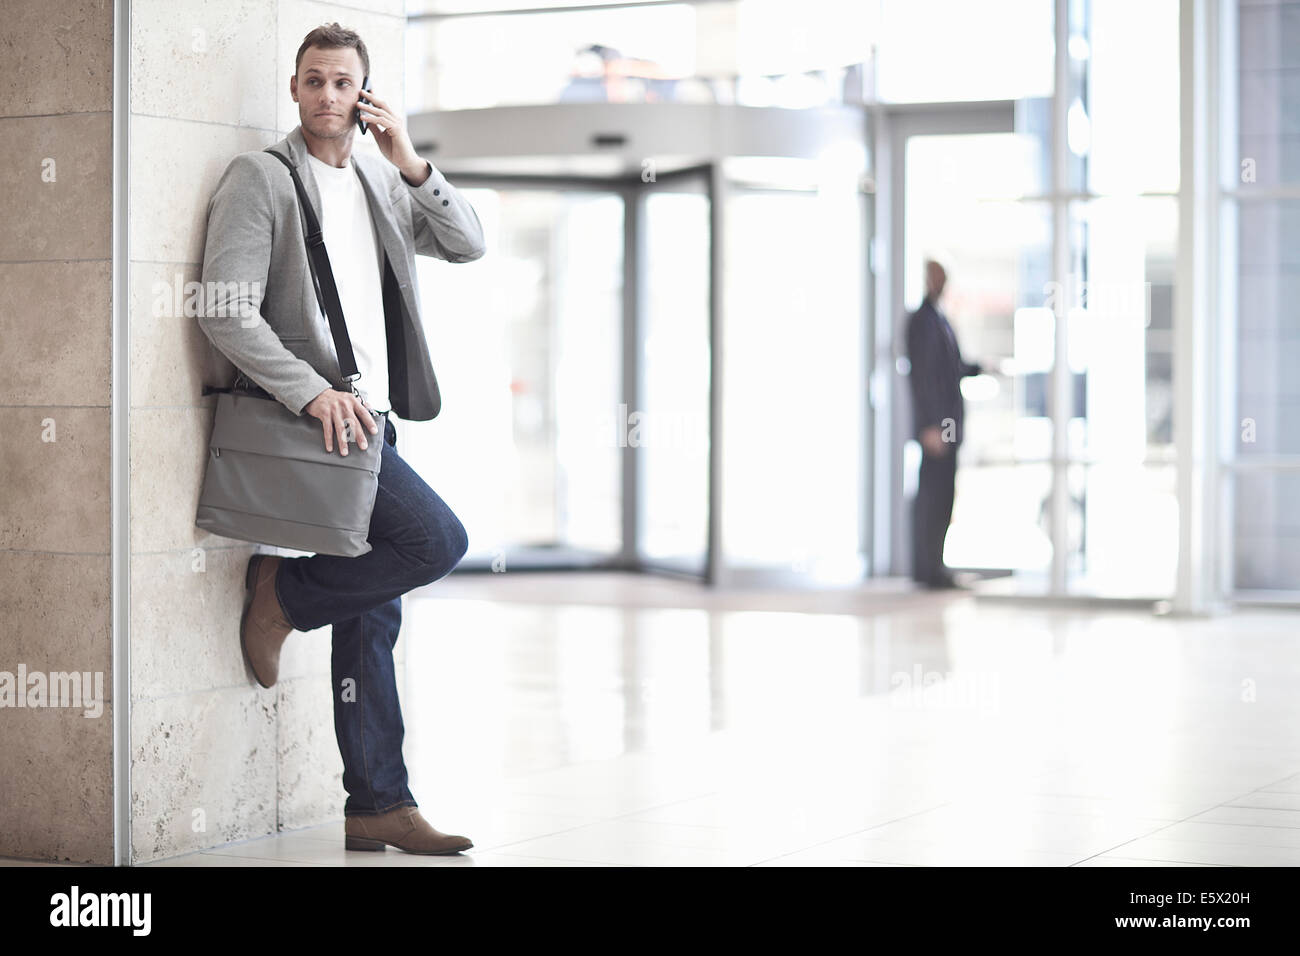 Young businessman chatting on smartphone in conference centre atrium - Stock Image